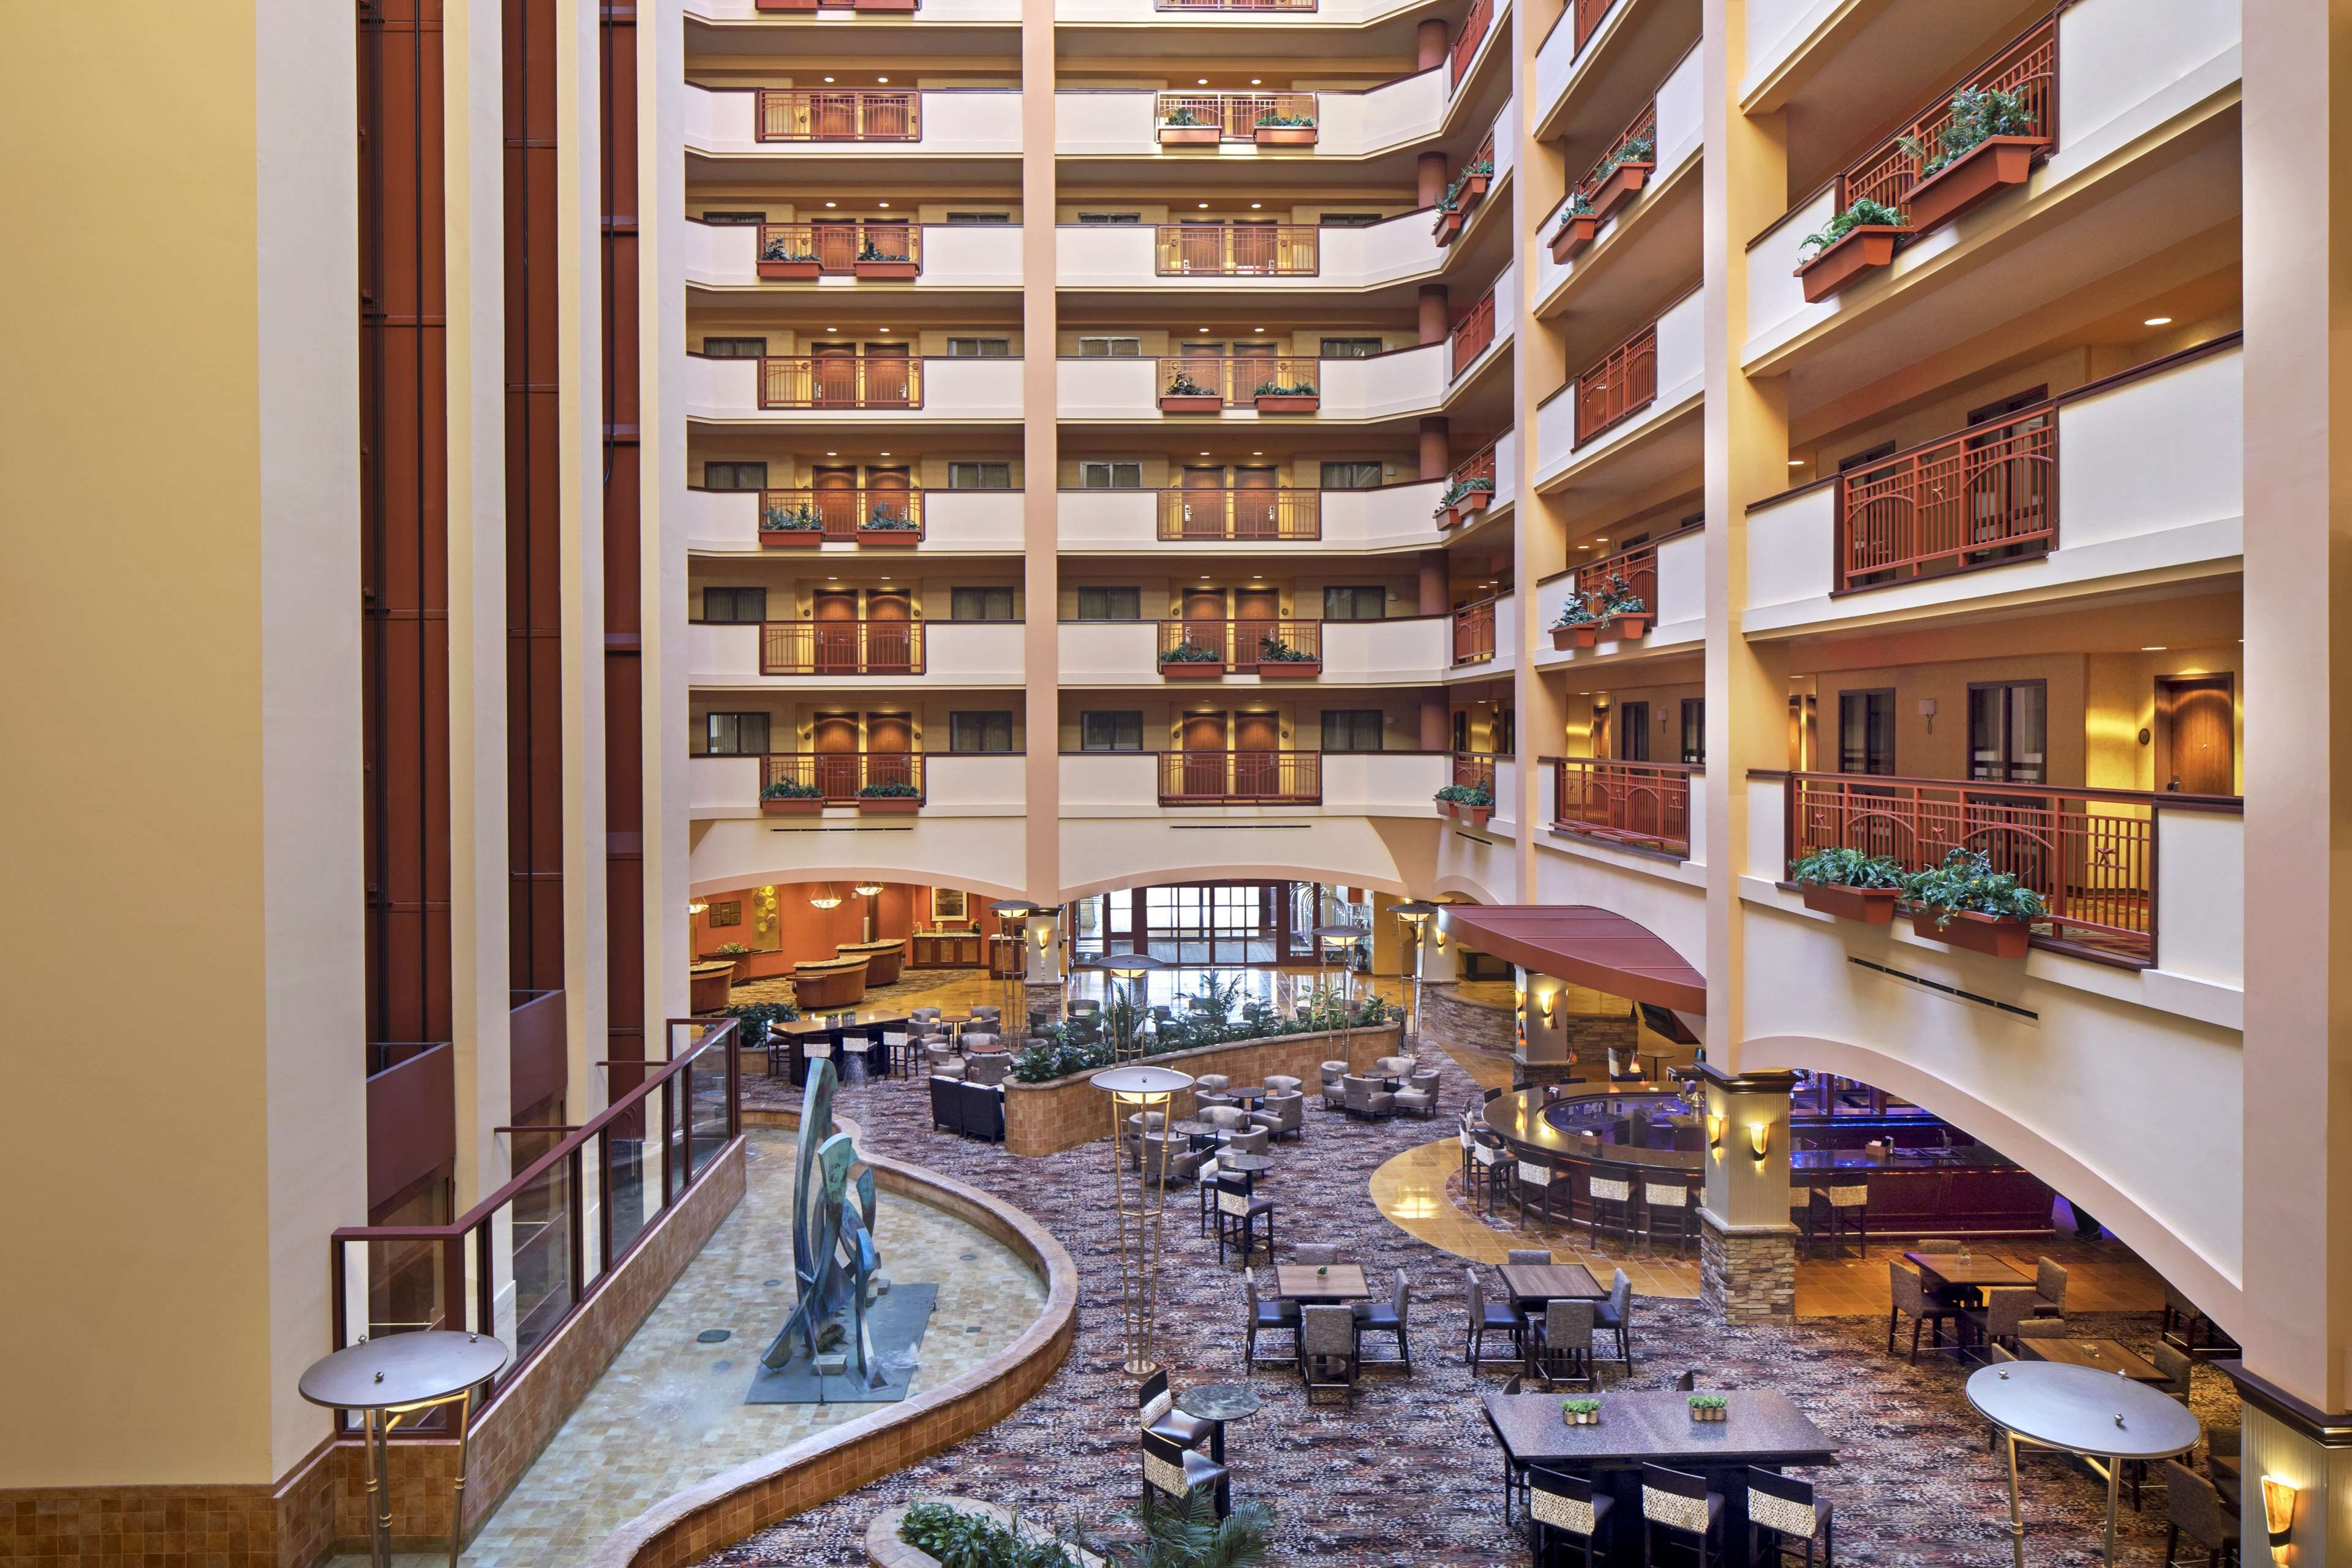 Embassy Suites by Hilton San Marcos Hotel Conference Center & Spa image 6